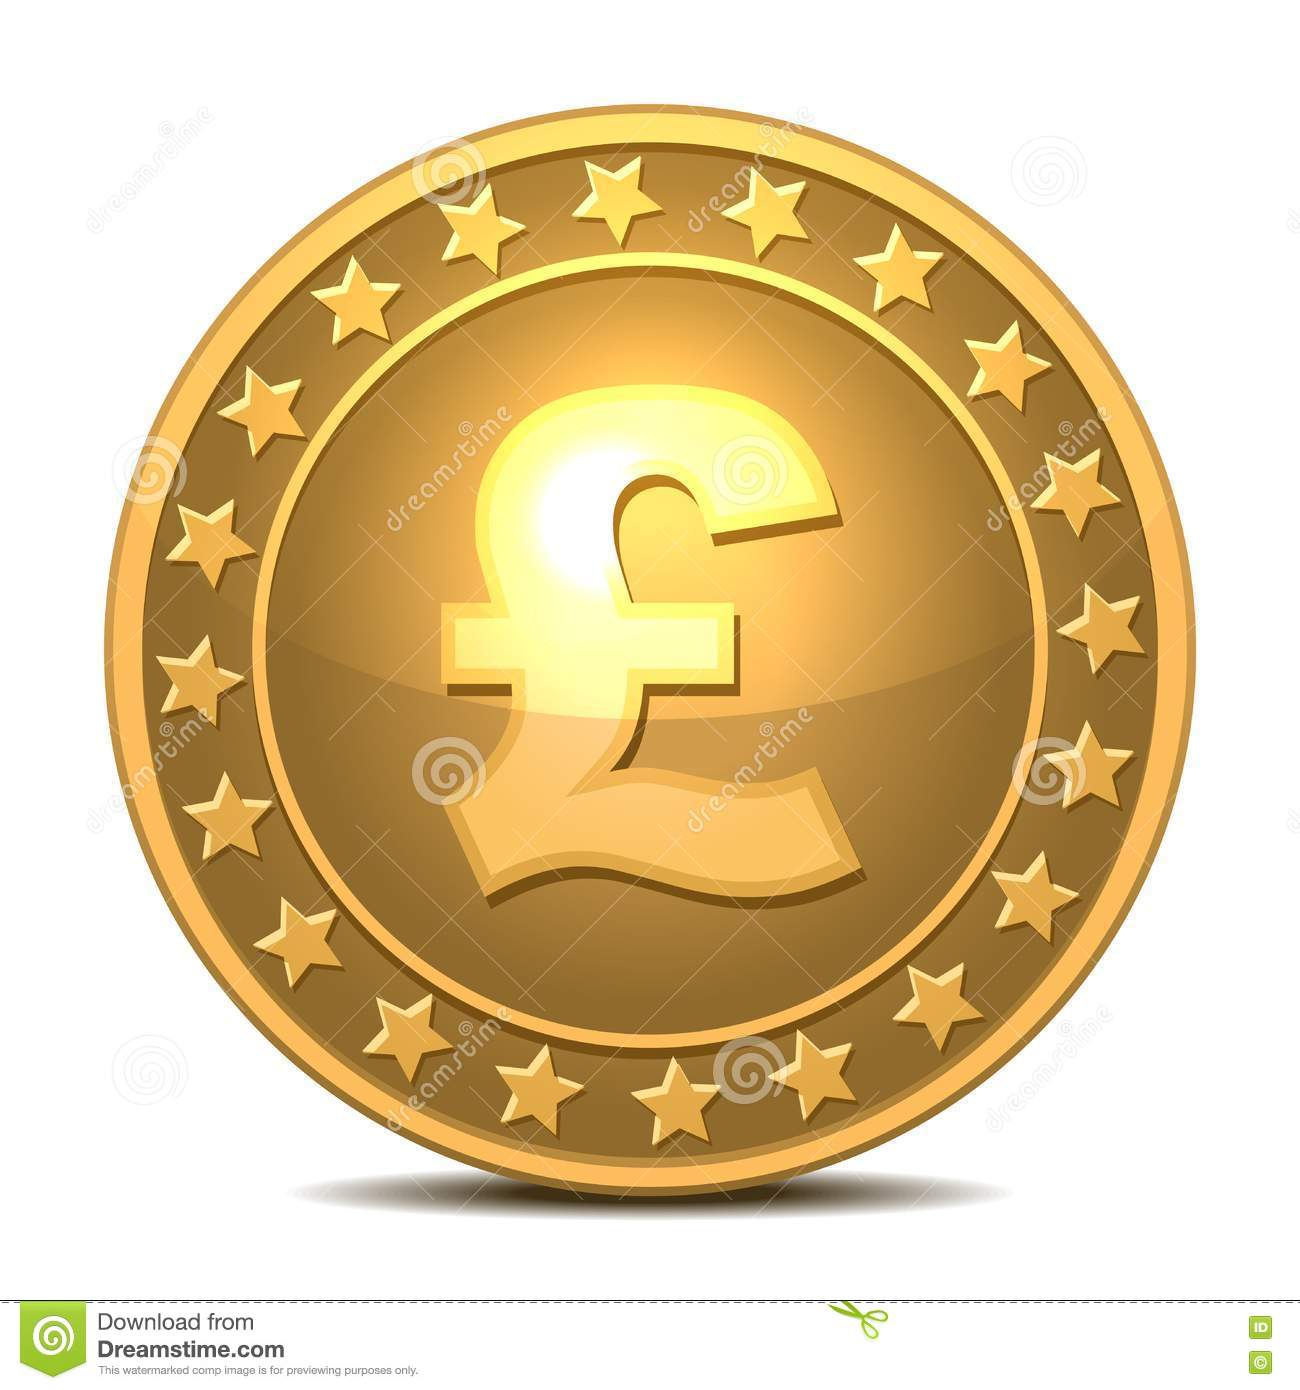 Libra Esterlina Euro Gold Coin With Pound Sterling Sign Stock Illustration